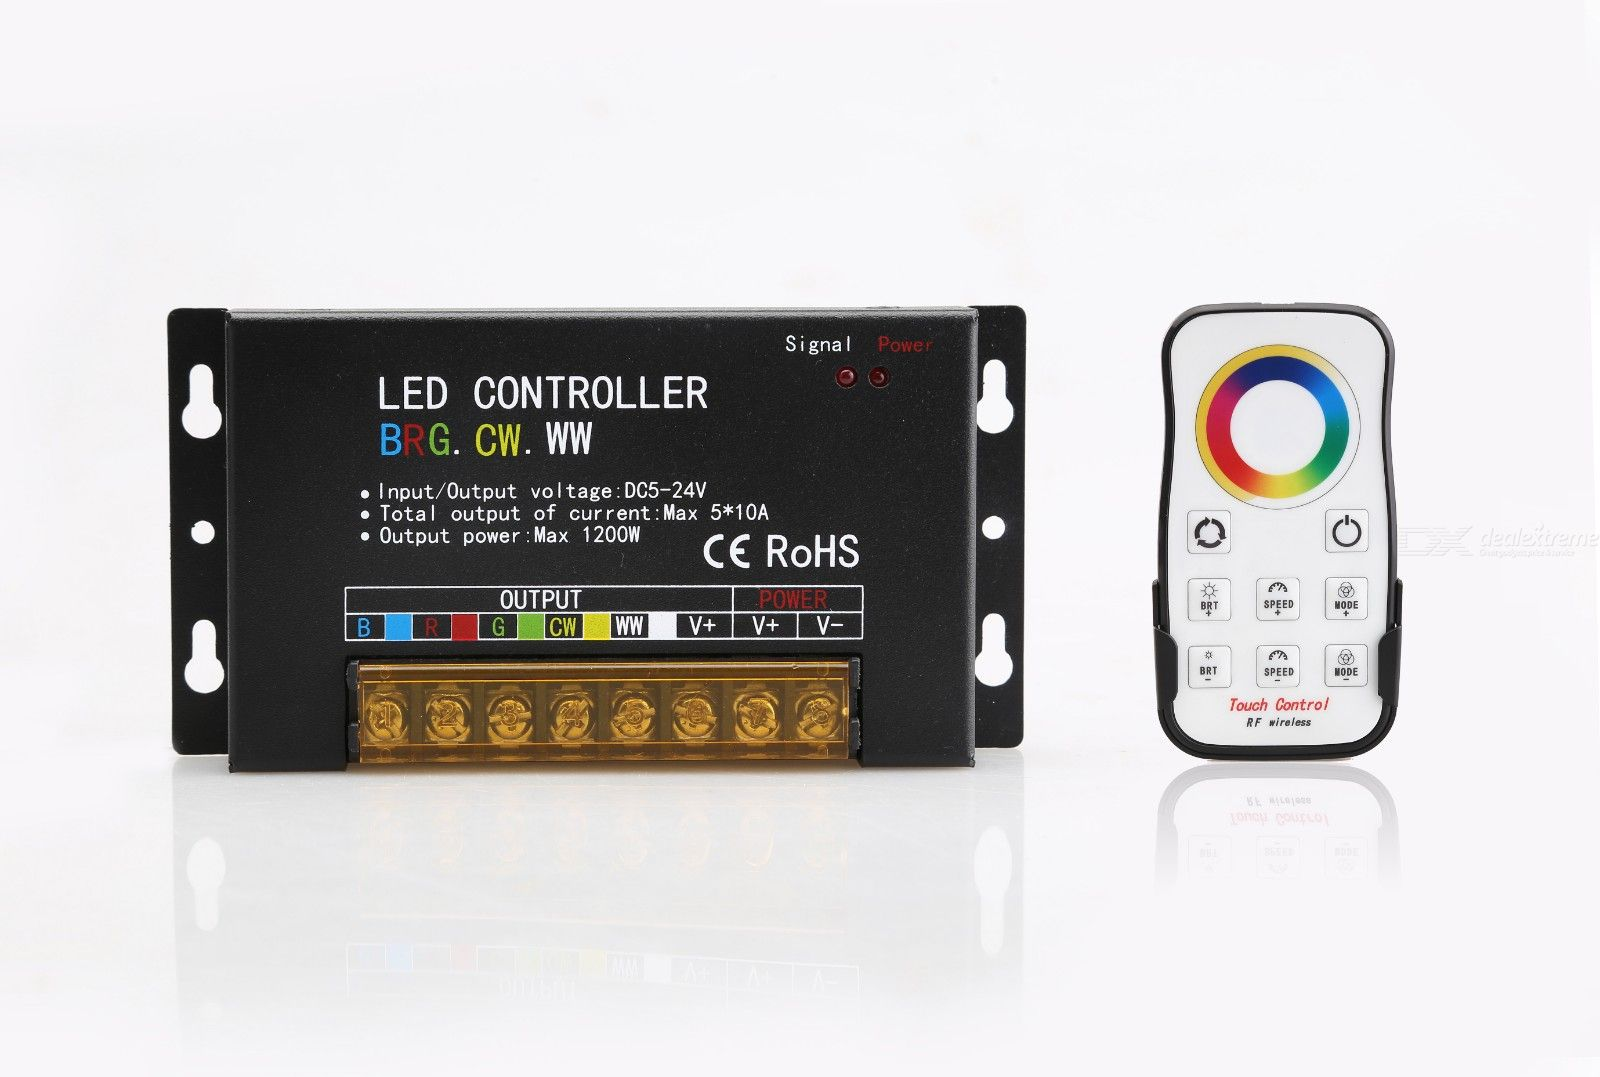 LED-BRG-F5 LED Controller for LED Strip Light RGB / CW / WW - from $42.67